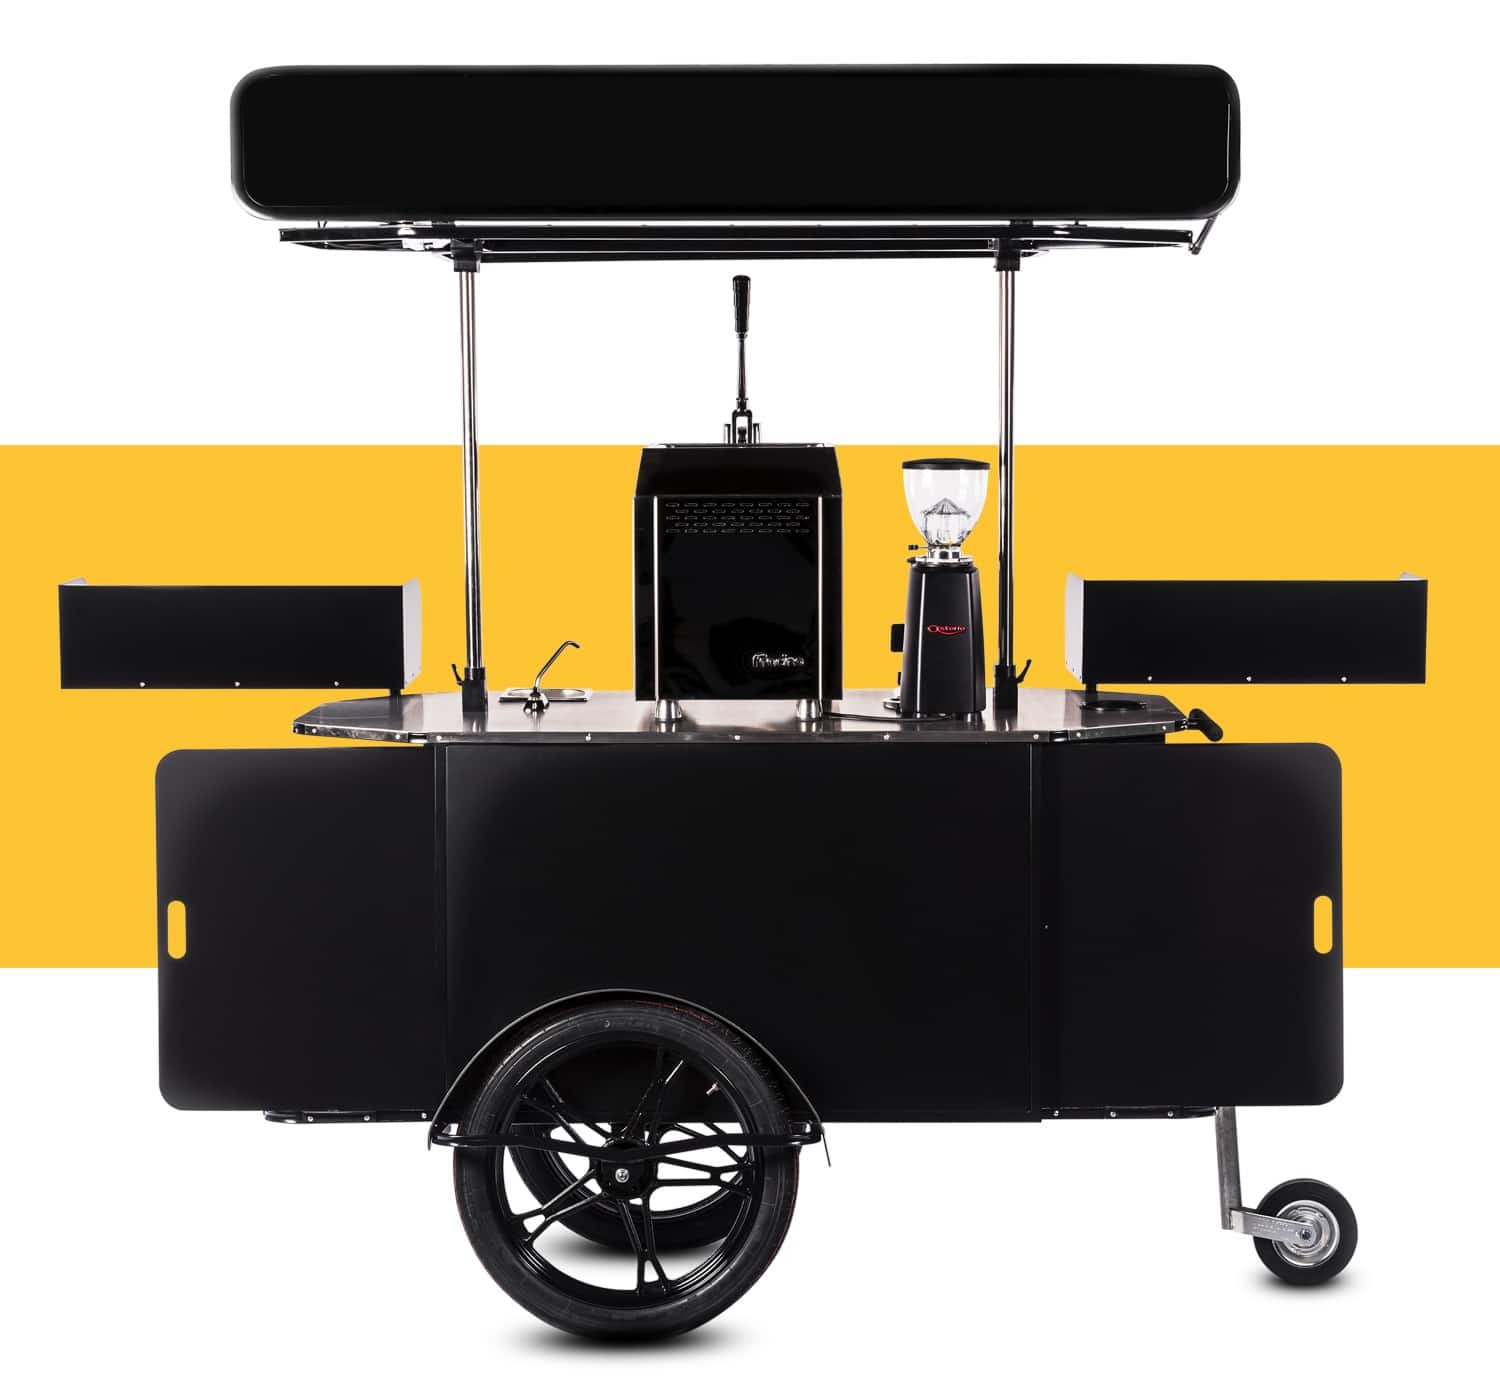 Fully equipped coffee cart for sale by Bizz On Wheels